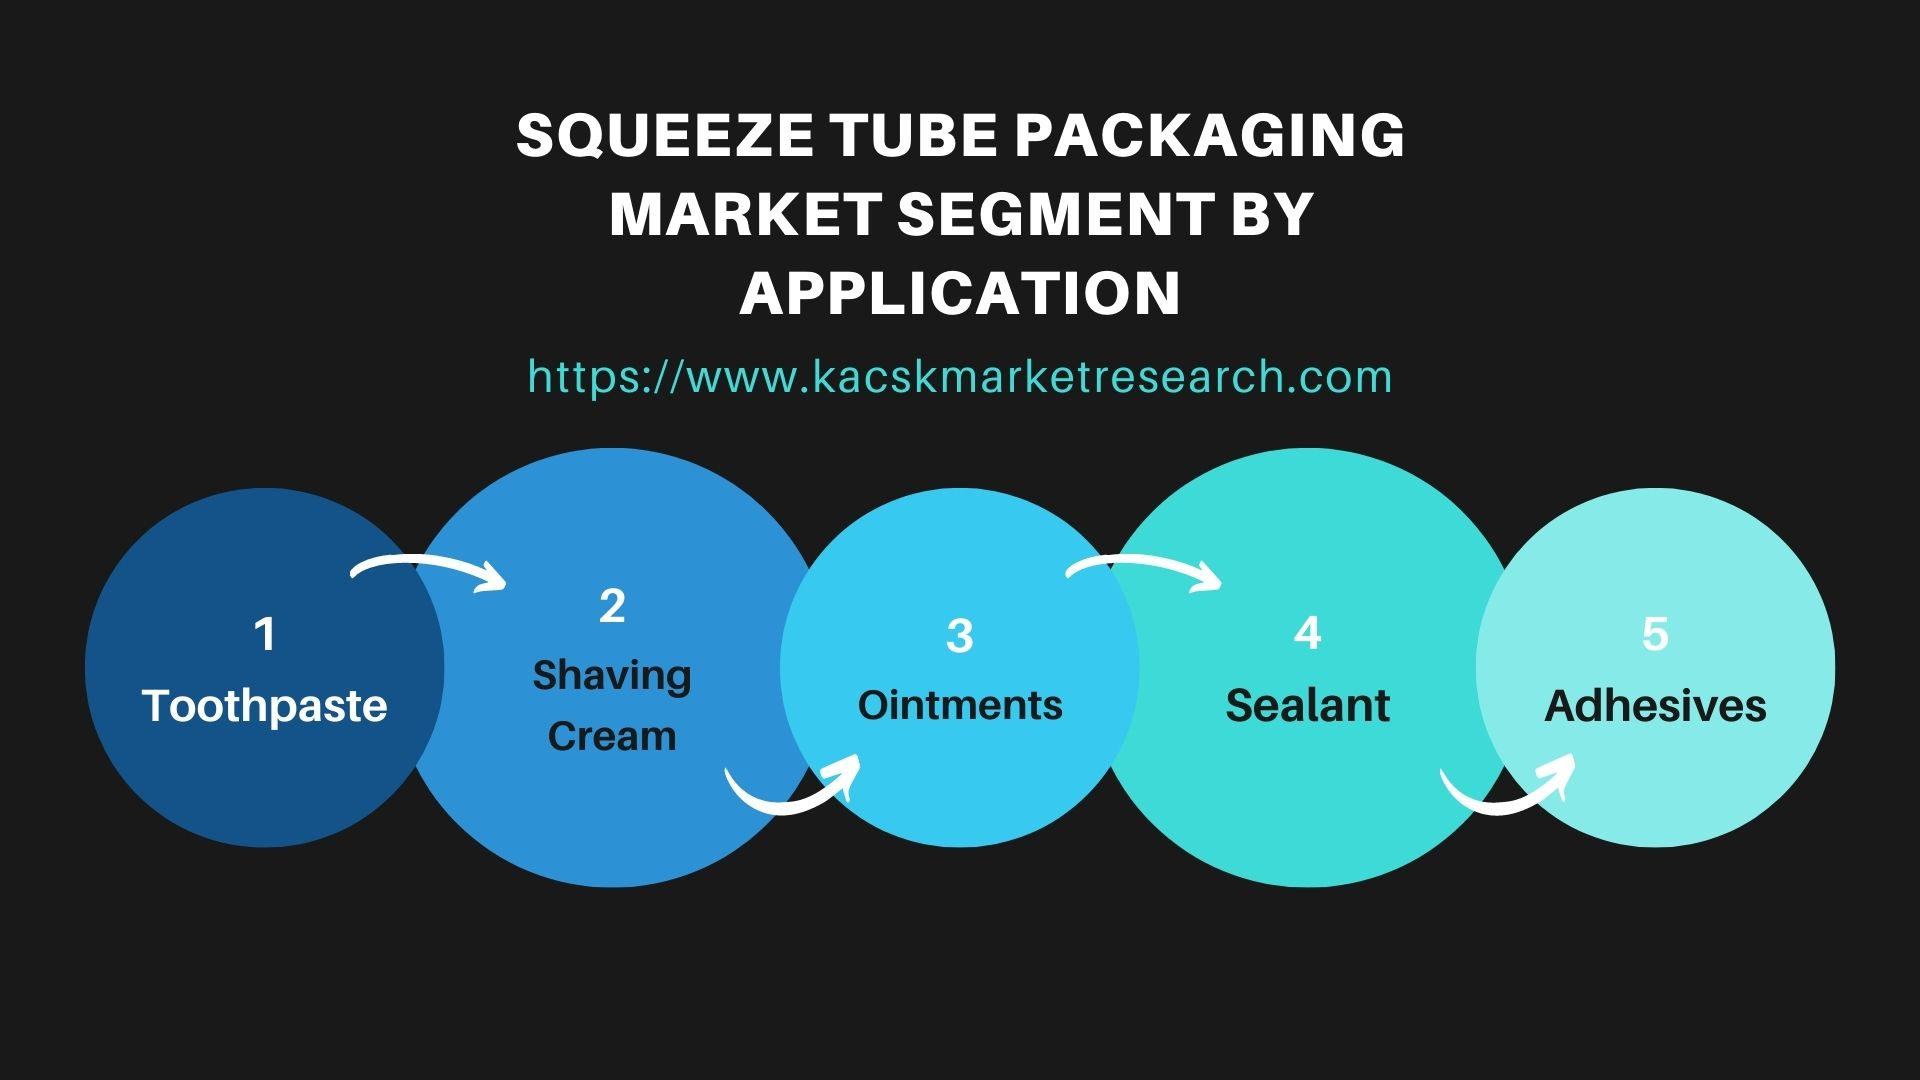 Squeeze Tube Packaging Market Segment by Application